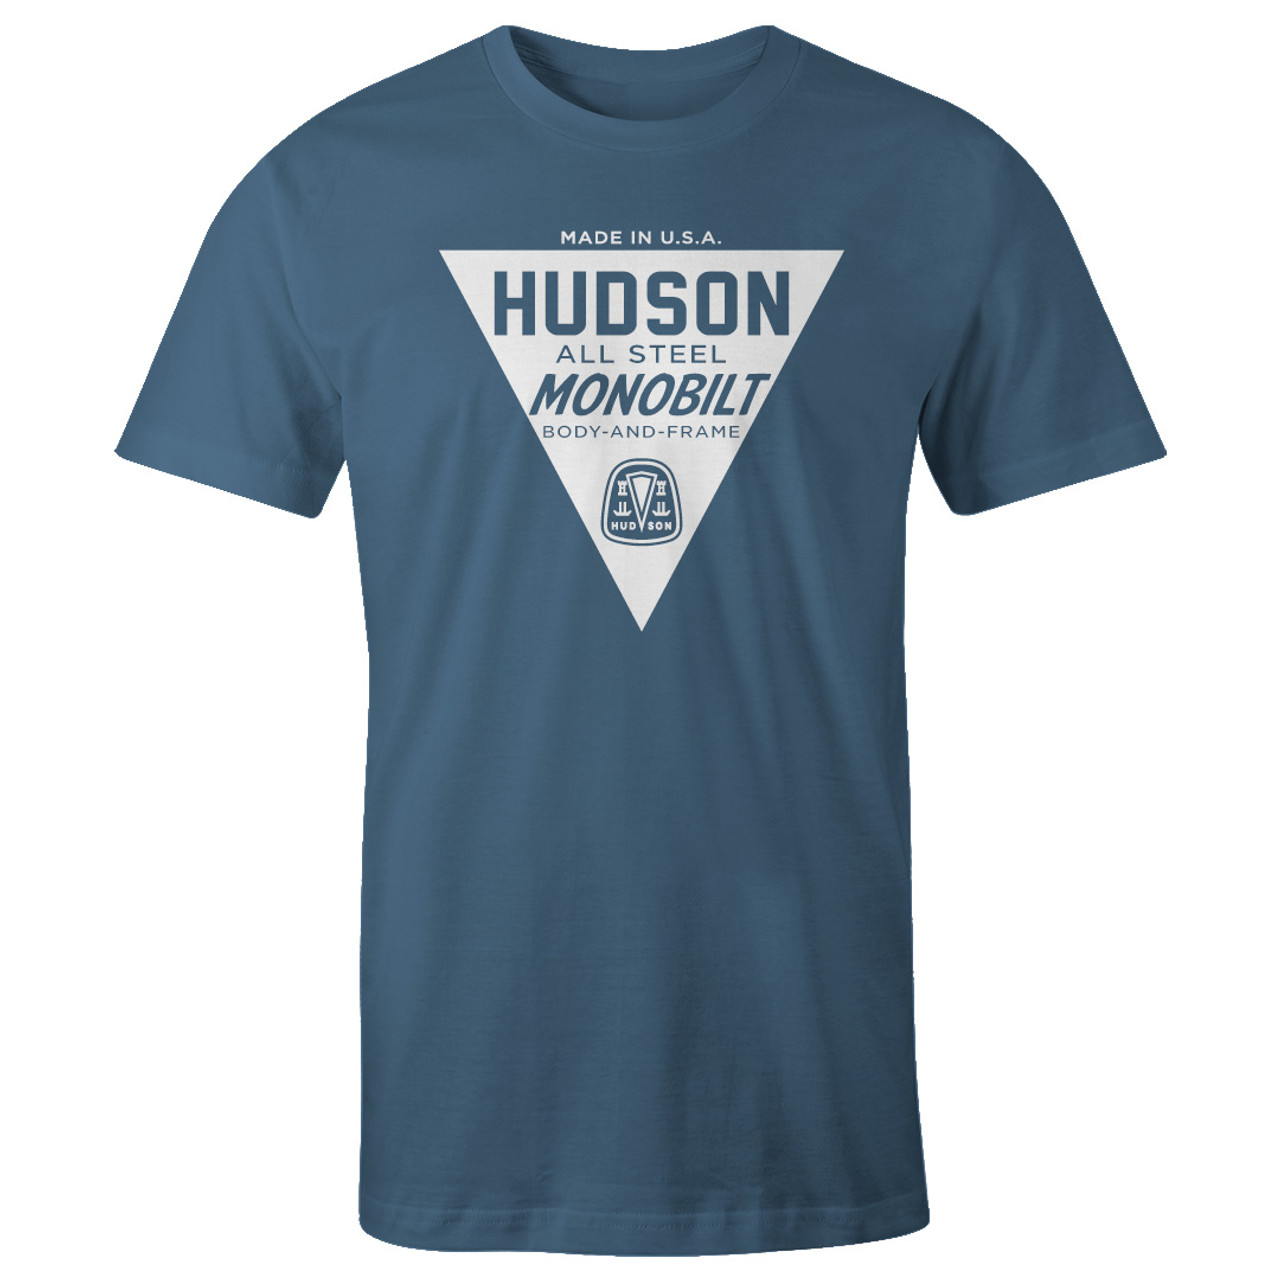 T Shirt Frame Hudson Monobilt Body And Frame